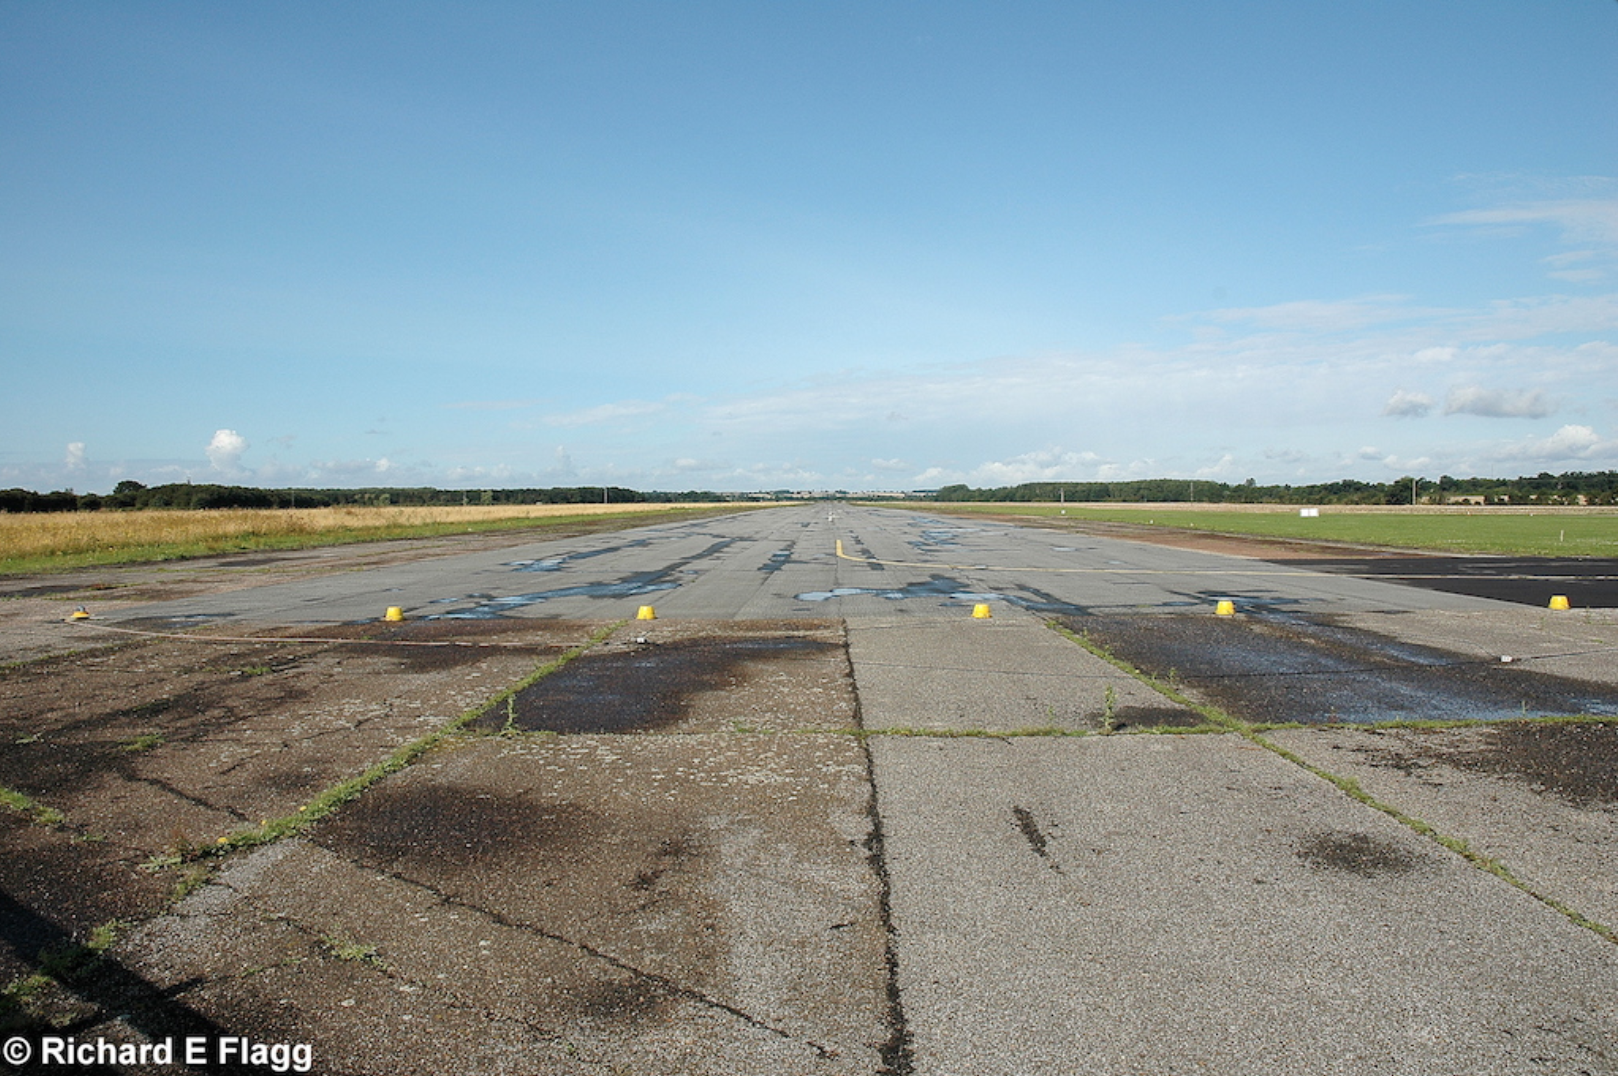 003Runway 10:28. Looking west from the runway 05:23 intersection - 17 August 2008.png